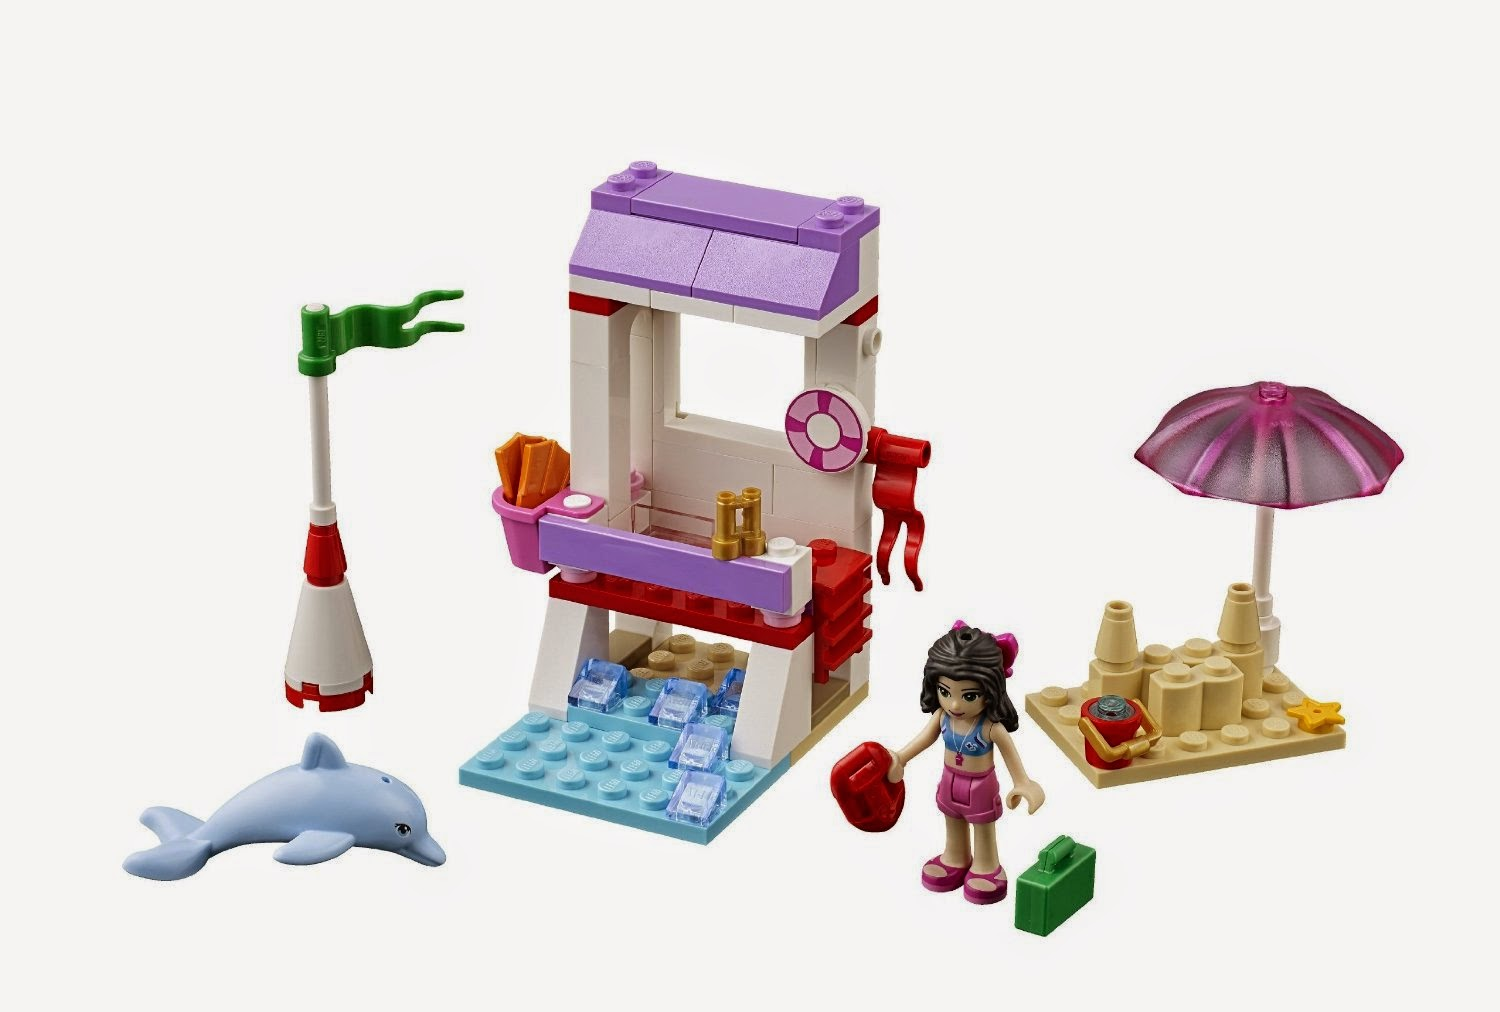 Lego Friends Piscina Libros Y Juguetes 1demagiaxfa Toys Lego Friends